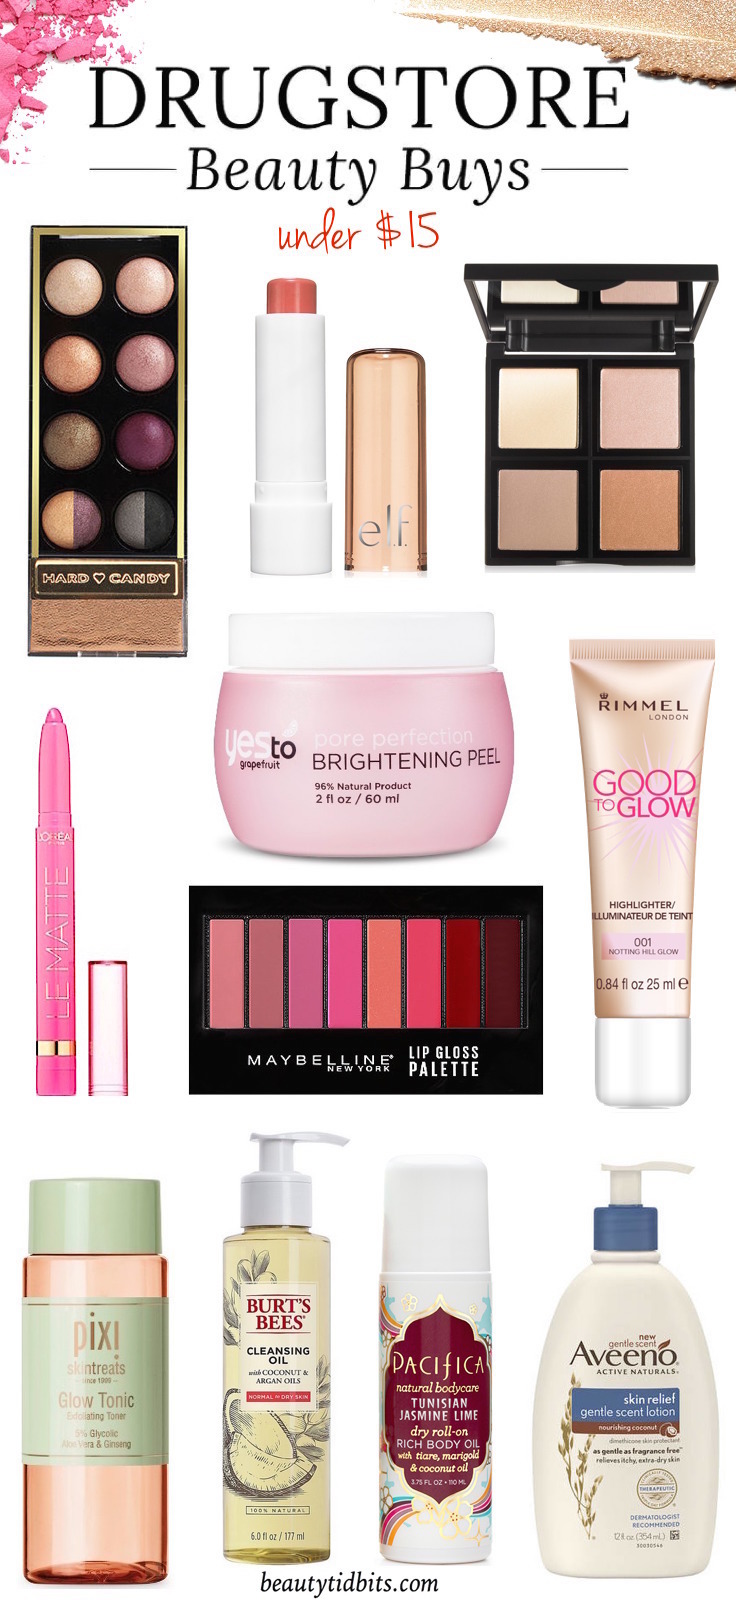 The latest in drugstore beauty is right here! Check out these hot new drugstore picks that deliver a boost of radiance and perfect your complexion!